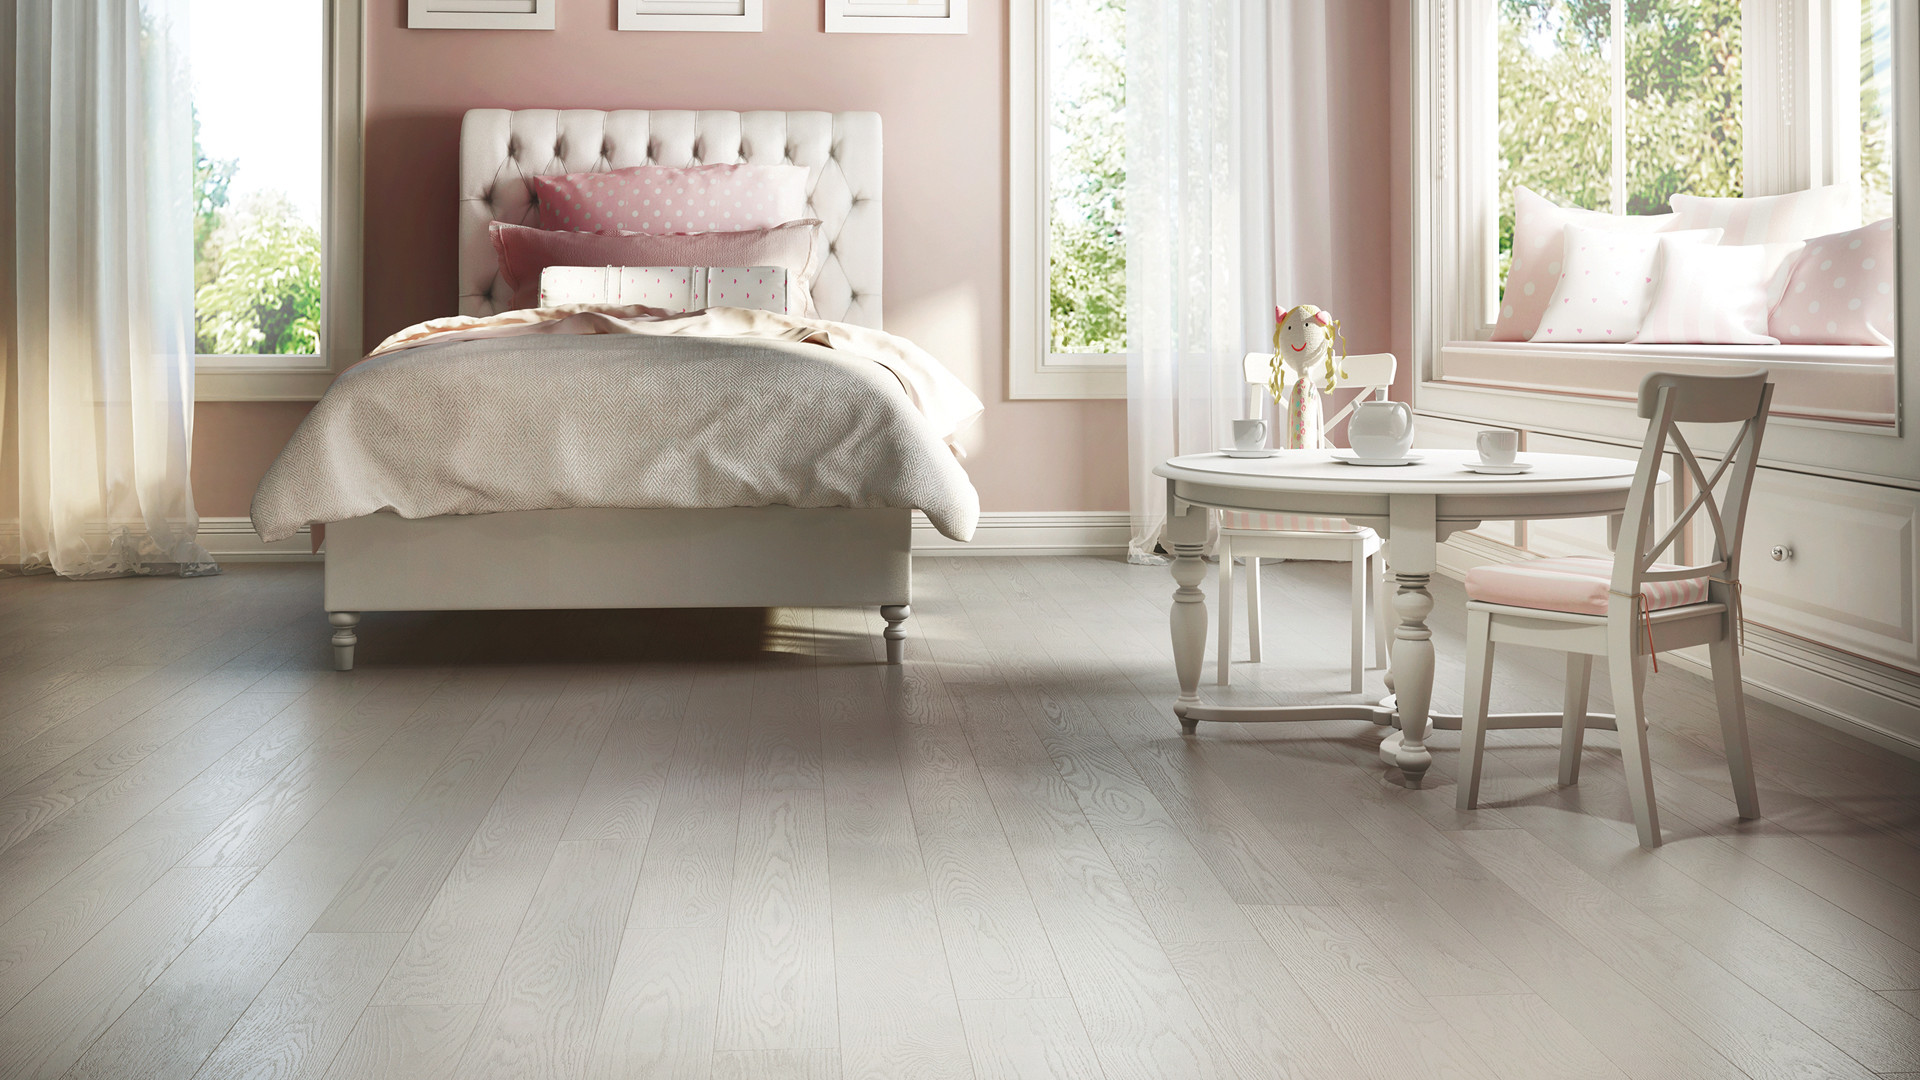 hardwood floors different colors different rooms of 4 latest hardwood flooring trends of 2018 lauzon flooring regarding new colors in the urban loft series